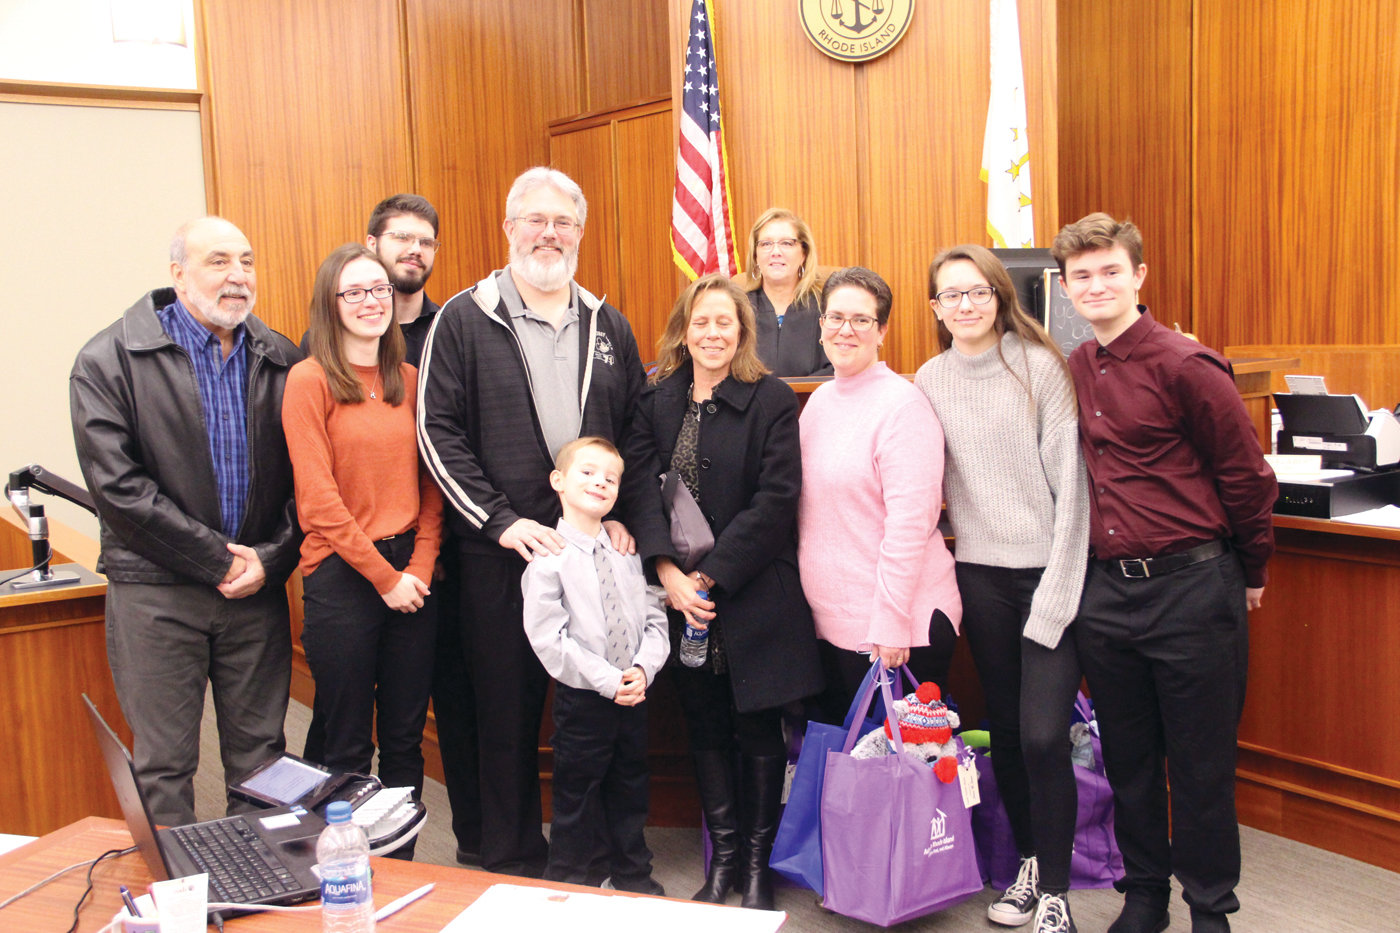 HAPPY MOMENT: The extended Fielder family joins Judge Karen Lynch for a group photo following the formalization of Noah's adoption.